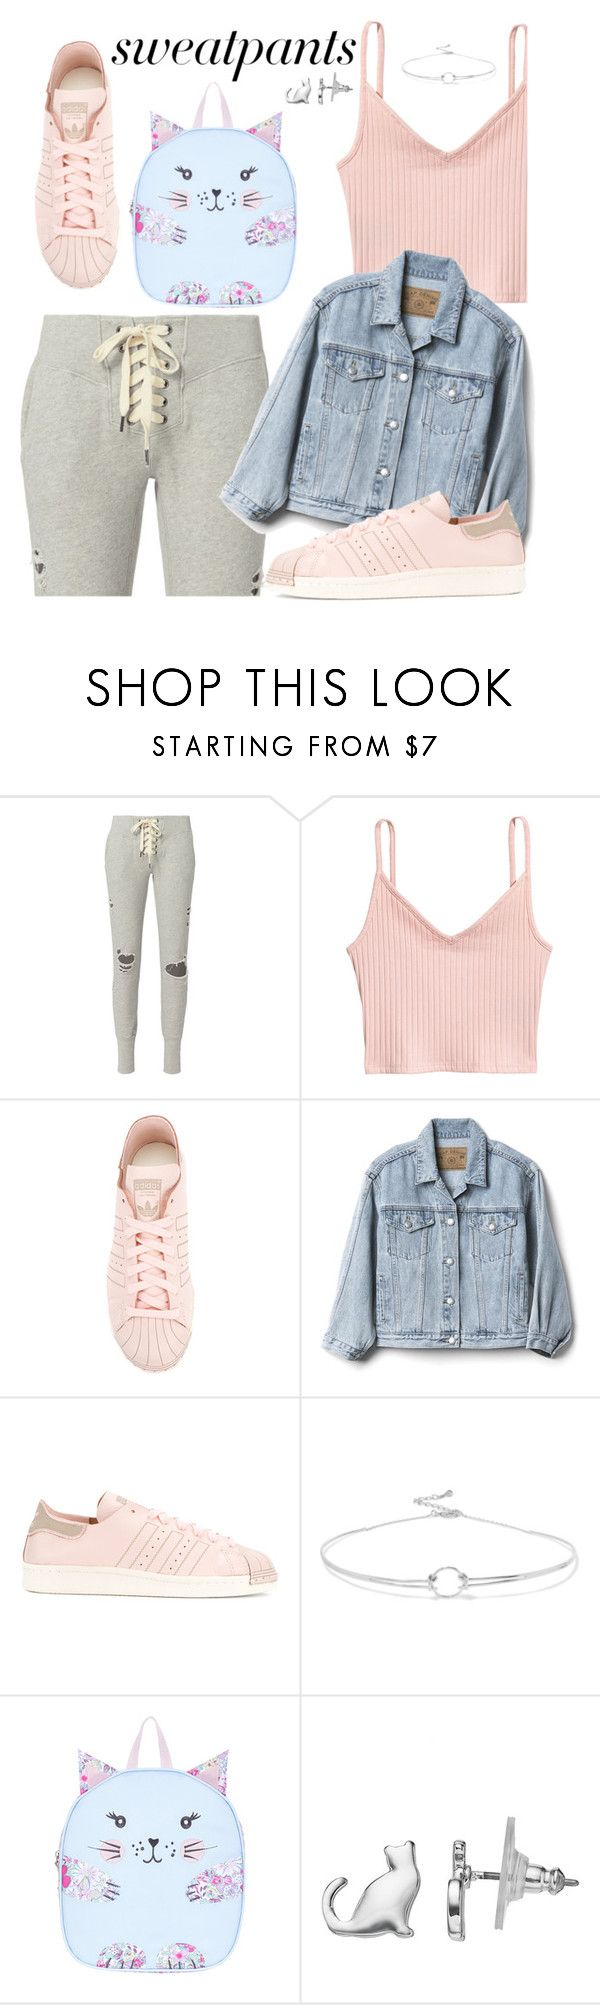 """""""Untitled #76"""" by genovefa1567 ❤ liked on Polyvore featuring NSF, H&M, adidas, Gap, Noir Jewelry, Monsoon, LC Lauren Conrad and sweatpants"""